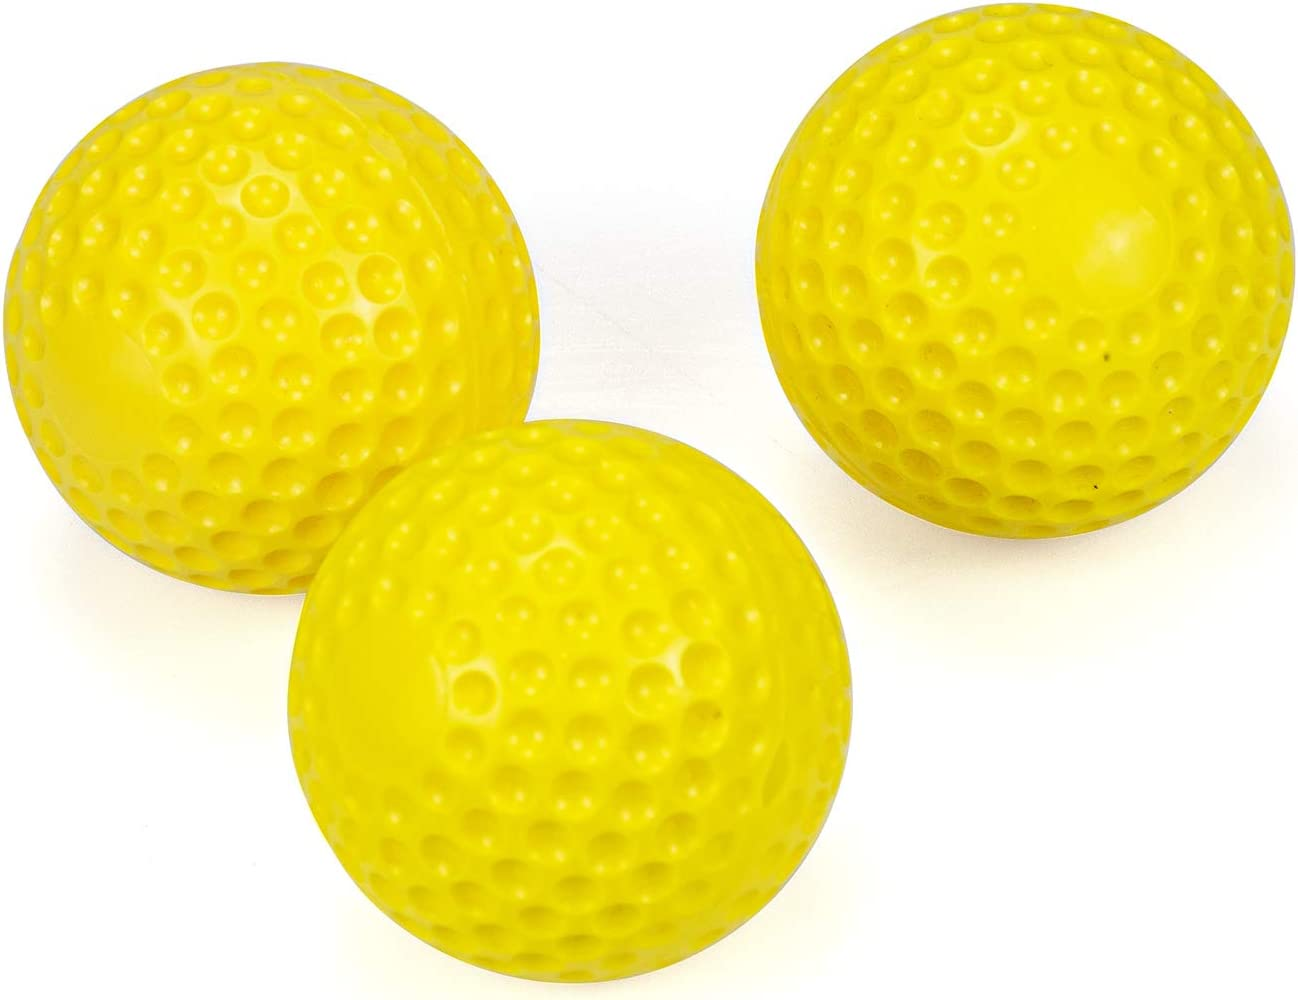 9 Inch Training Pitching Machine Baseballs 12 Pack Yellow Dimpled Practice Sport